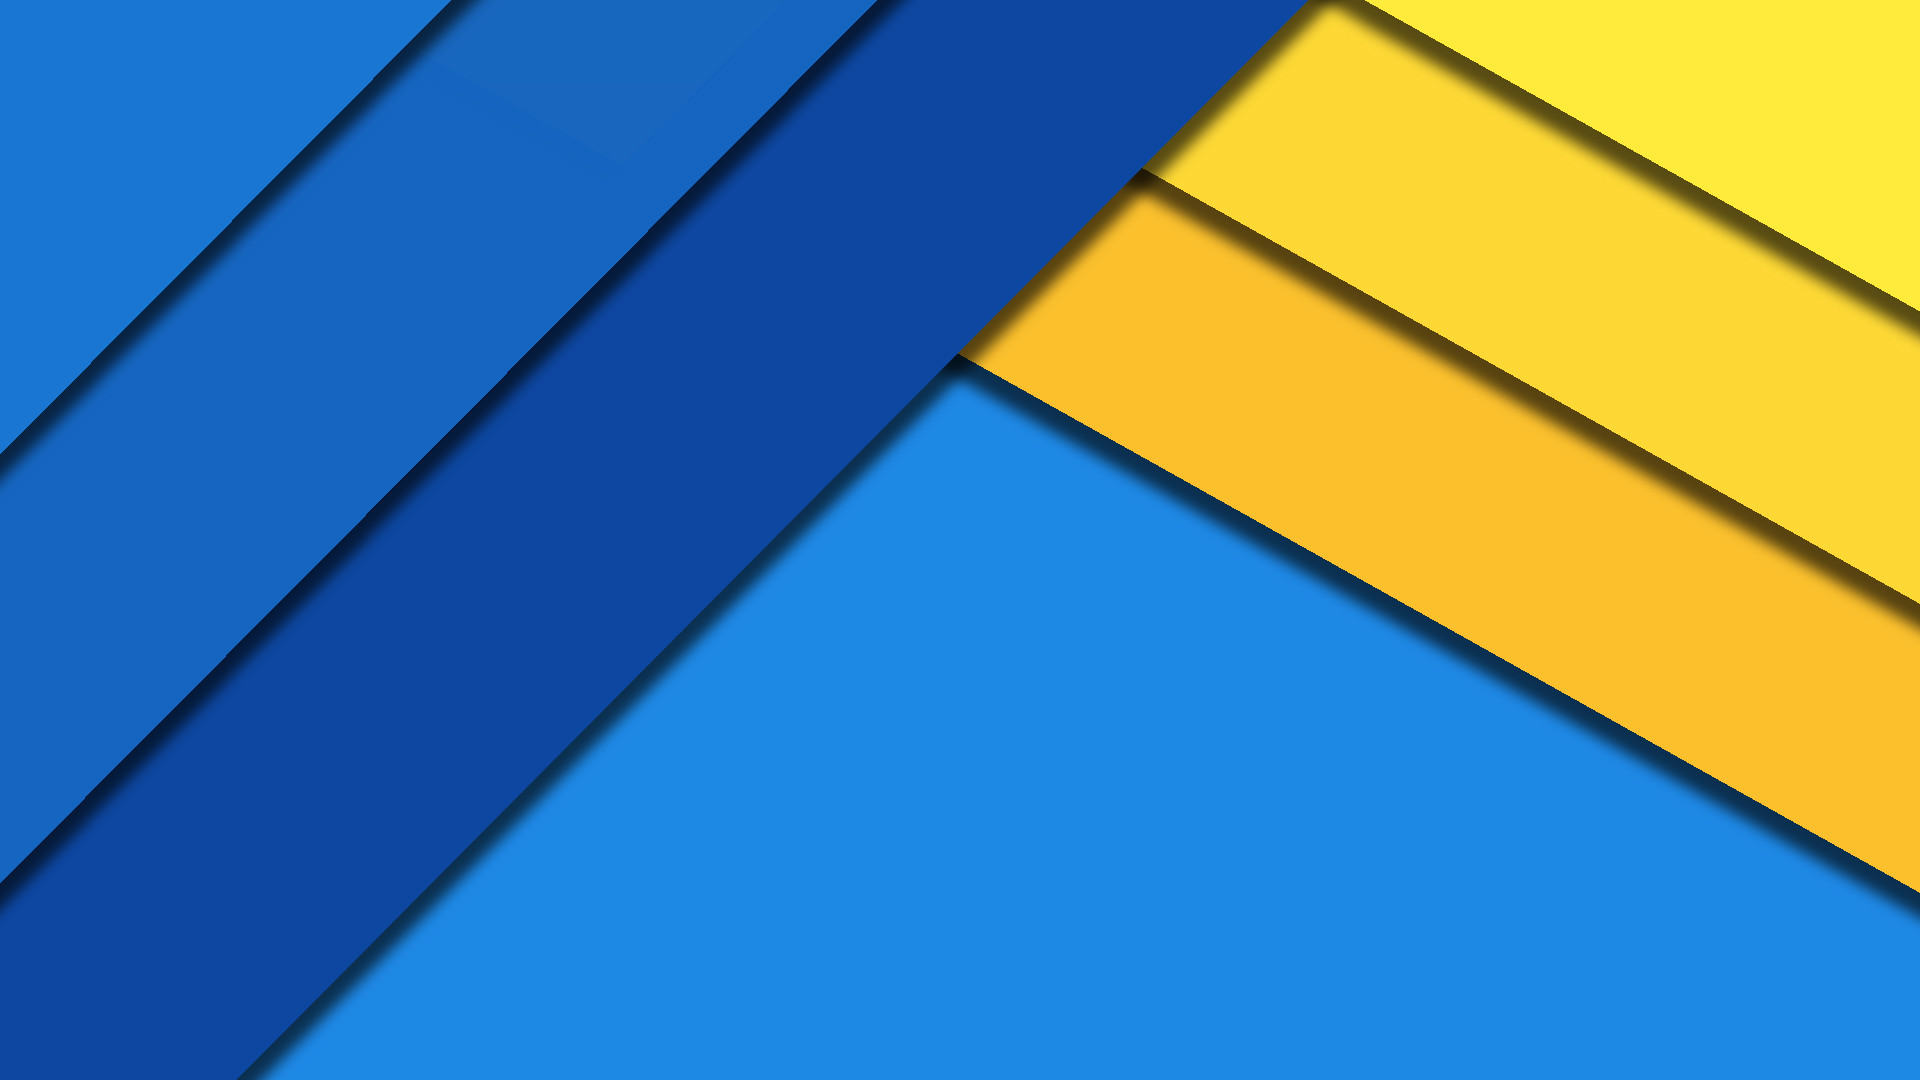 1920x1080 blue yellow material.jpg, 1, material wallpaper ...